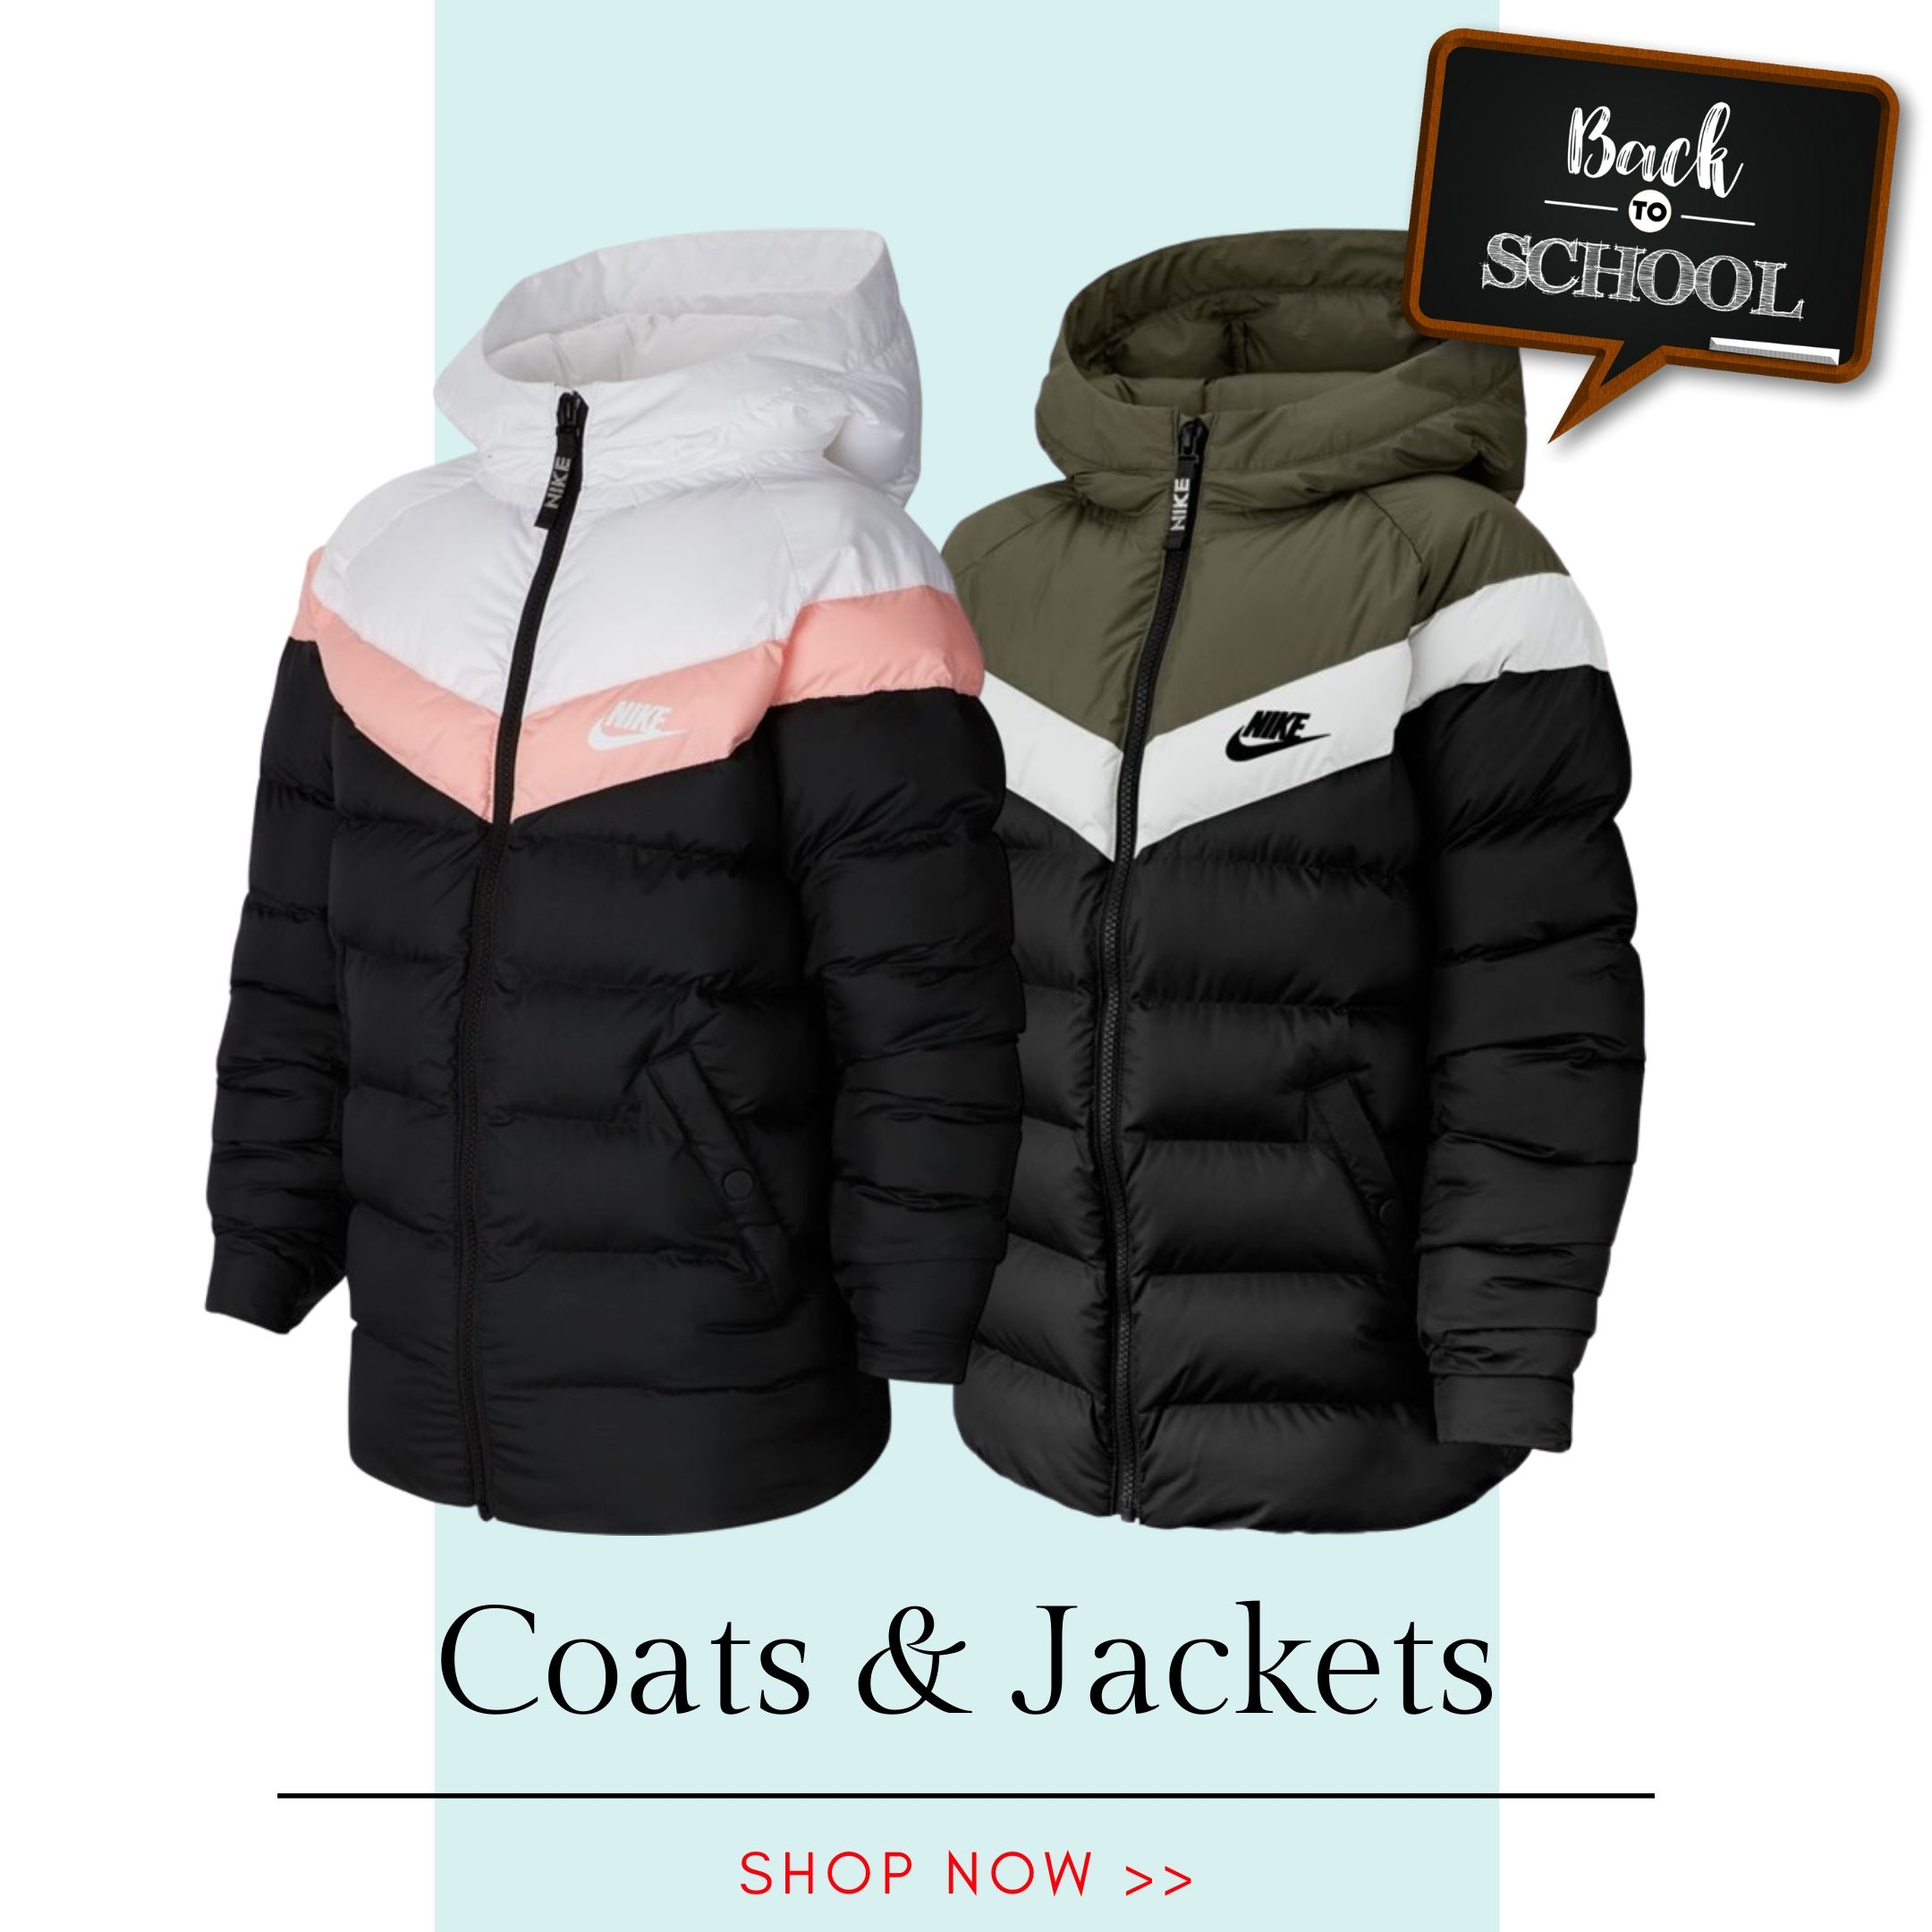 Back to School - Coats & Jackets